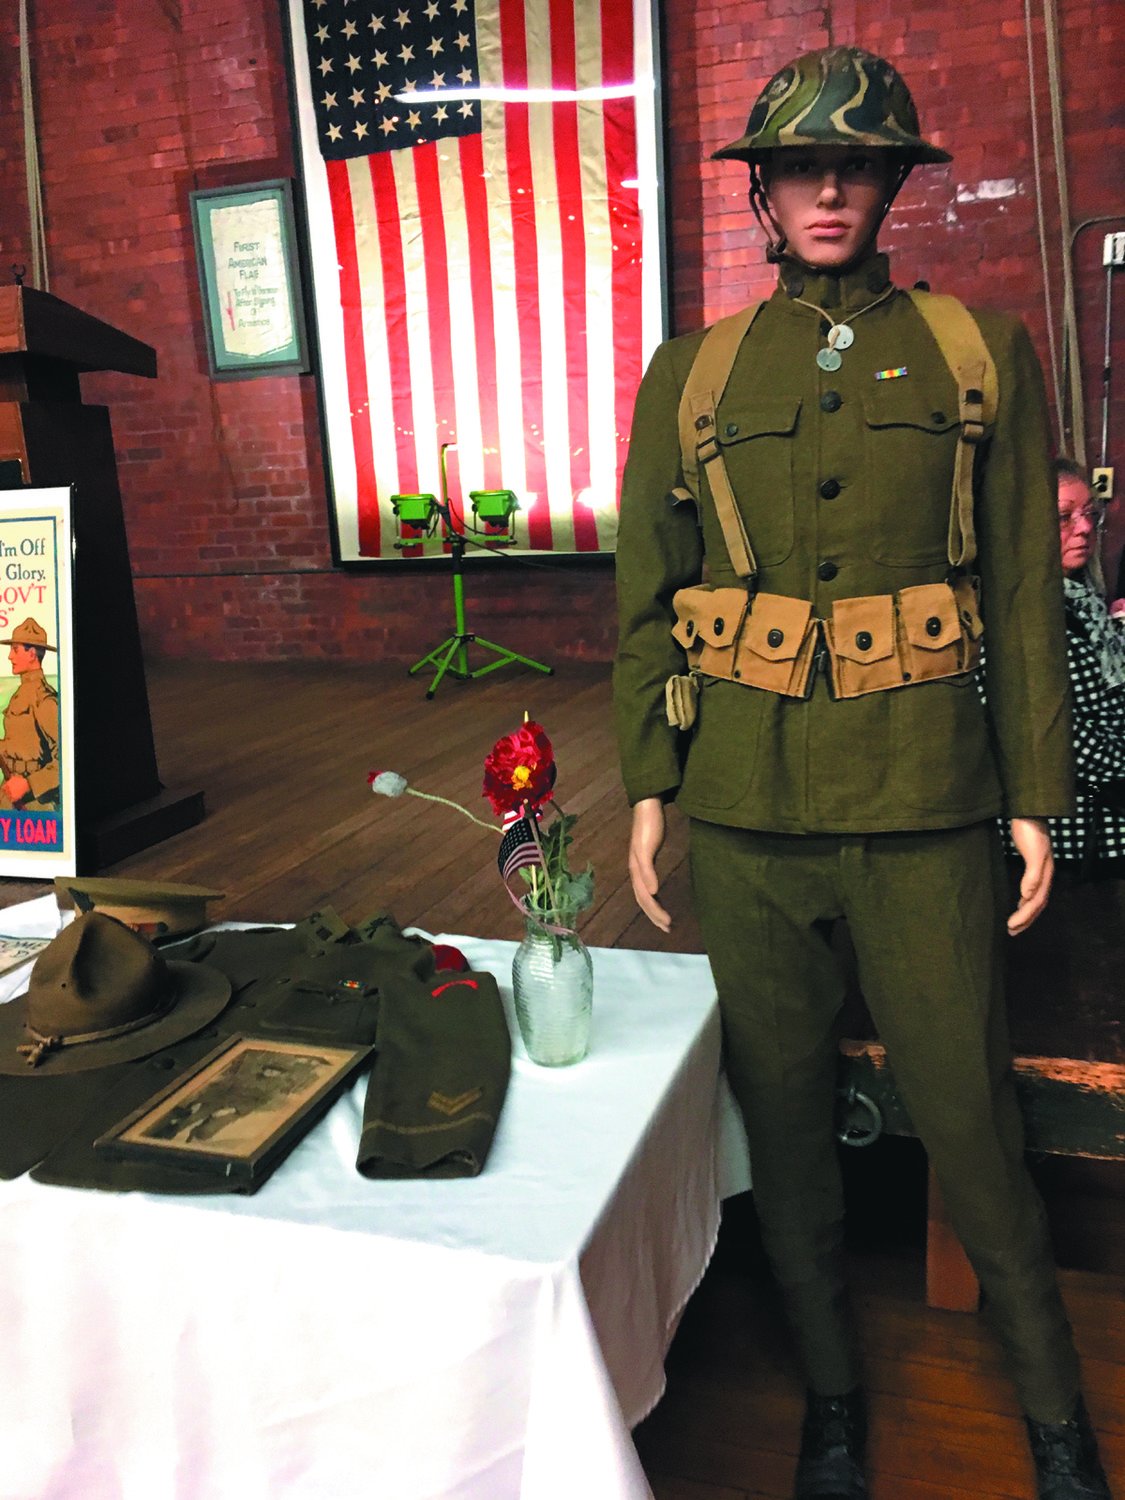 THREADS OF 